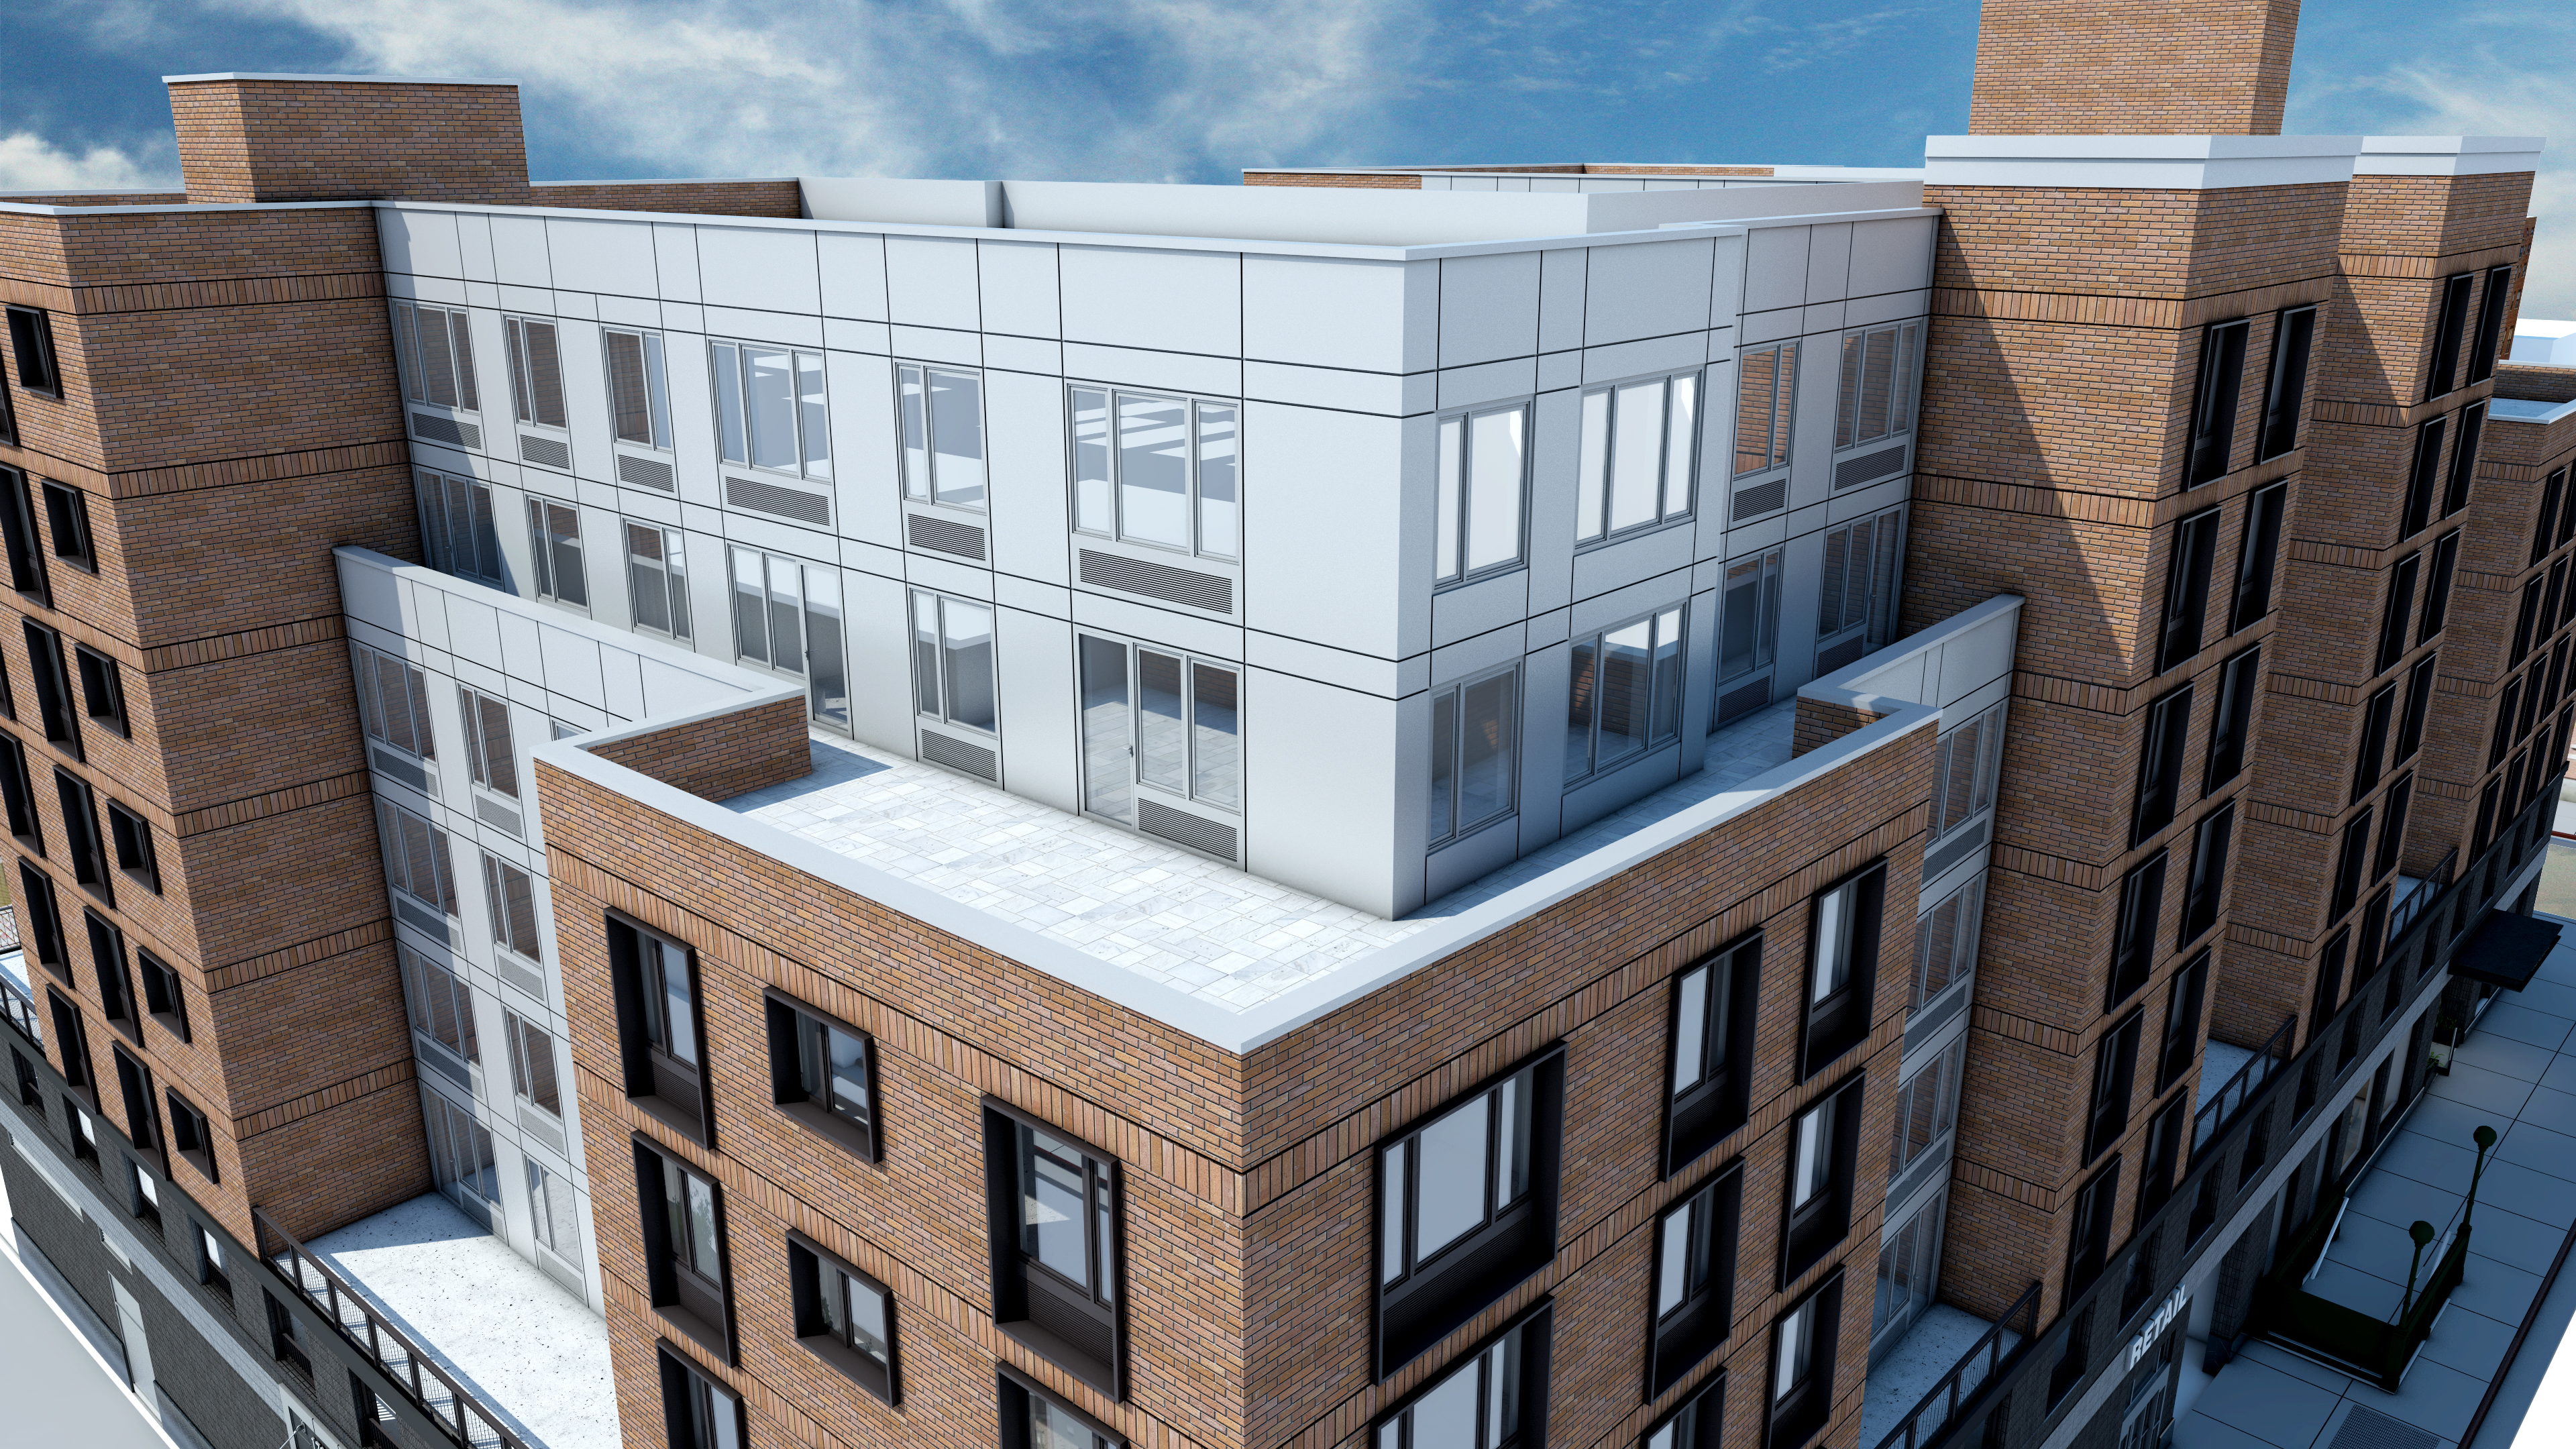 Rendering of 178-02 Hillside Avenue - ADG Architecture